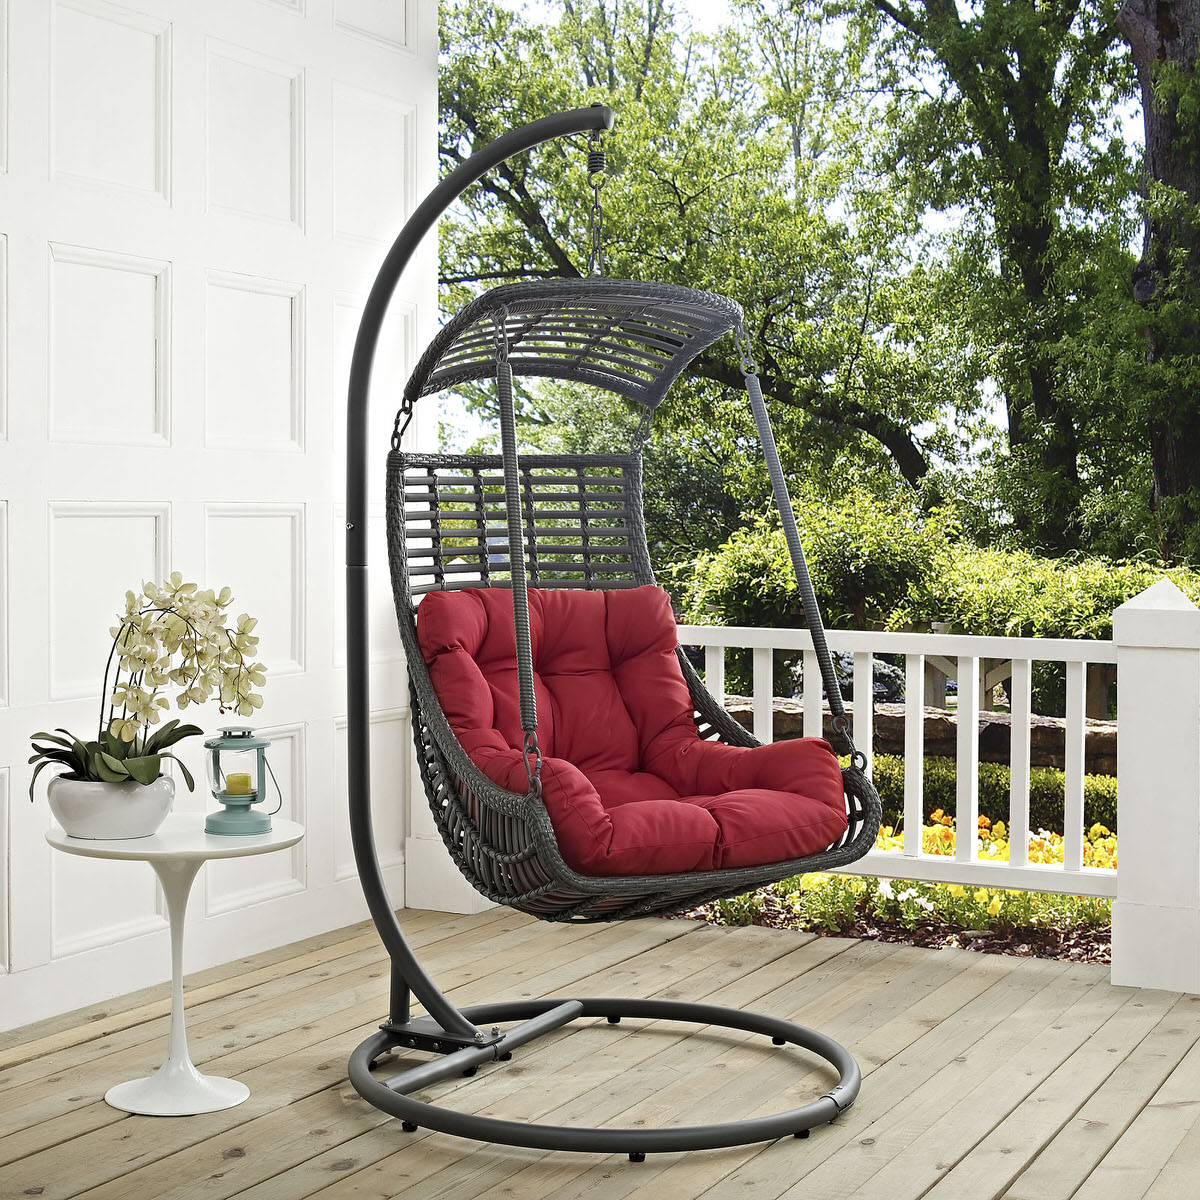 Jungle Outdoor Patio Swing Chair With Stand Red By Modern Living (Modern  Living)